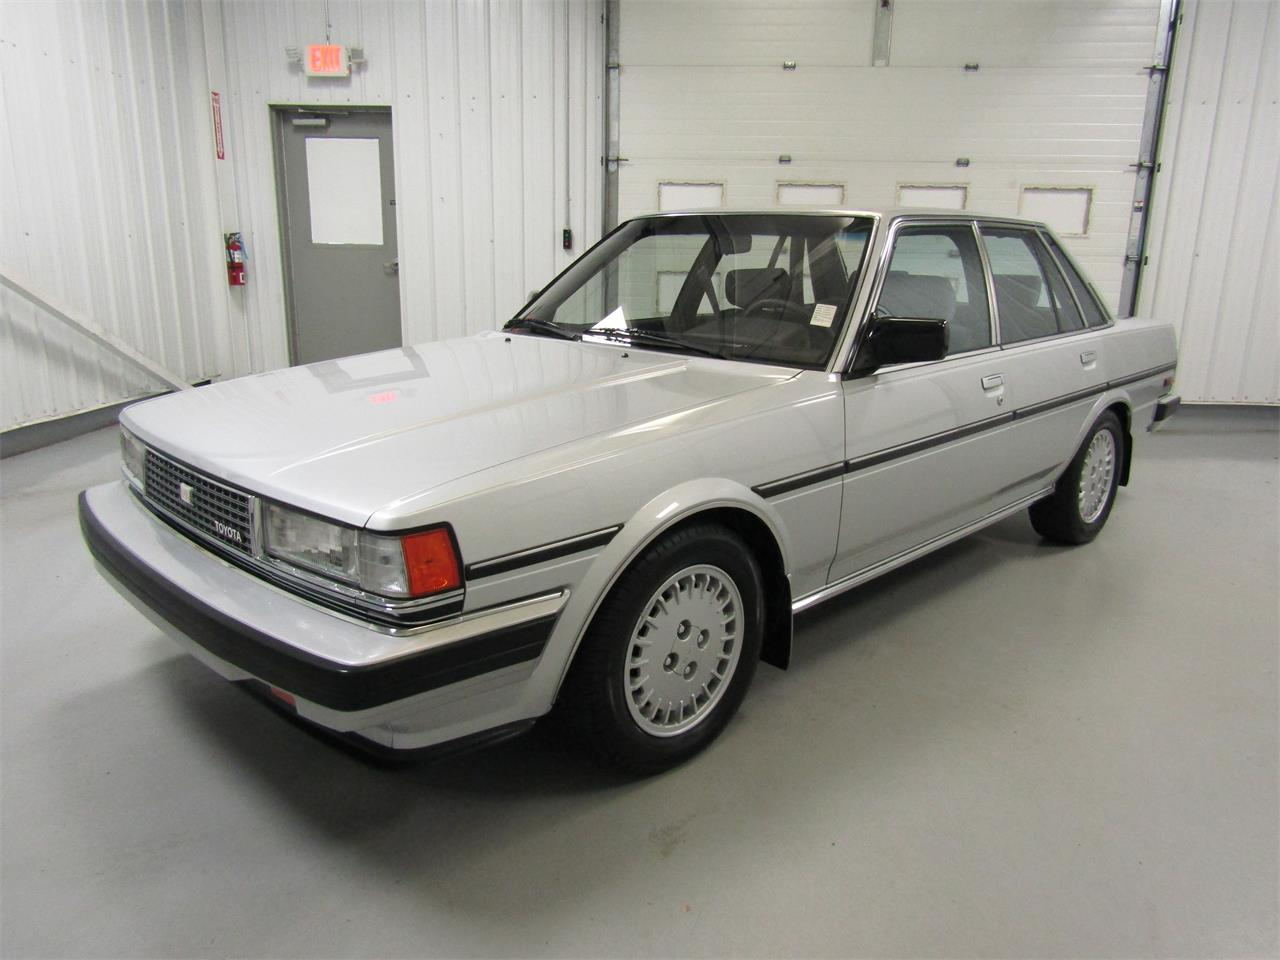 1985 Toyota Cressida for sale in Christiansburg, VA – photo 5